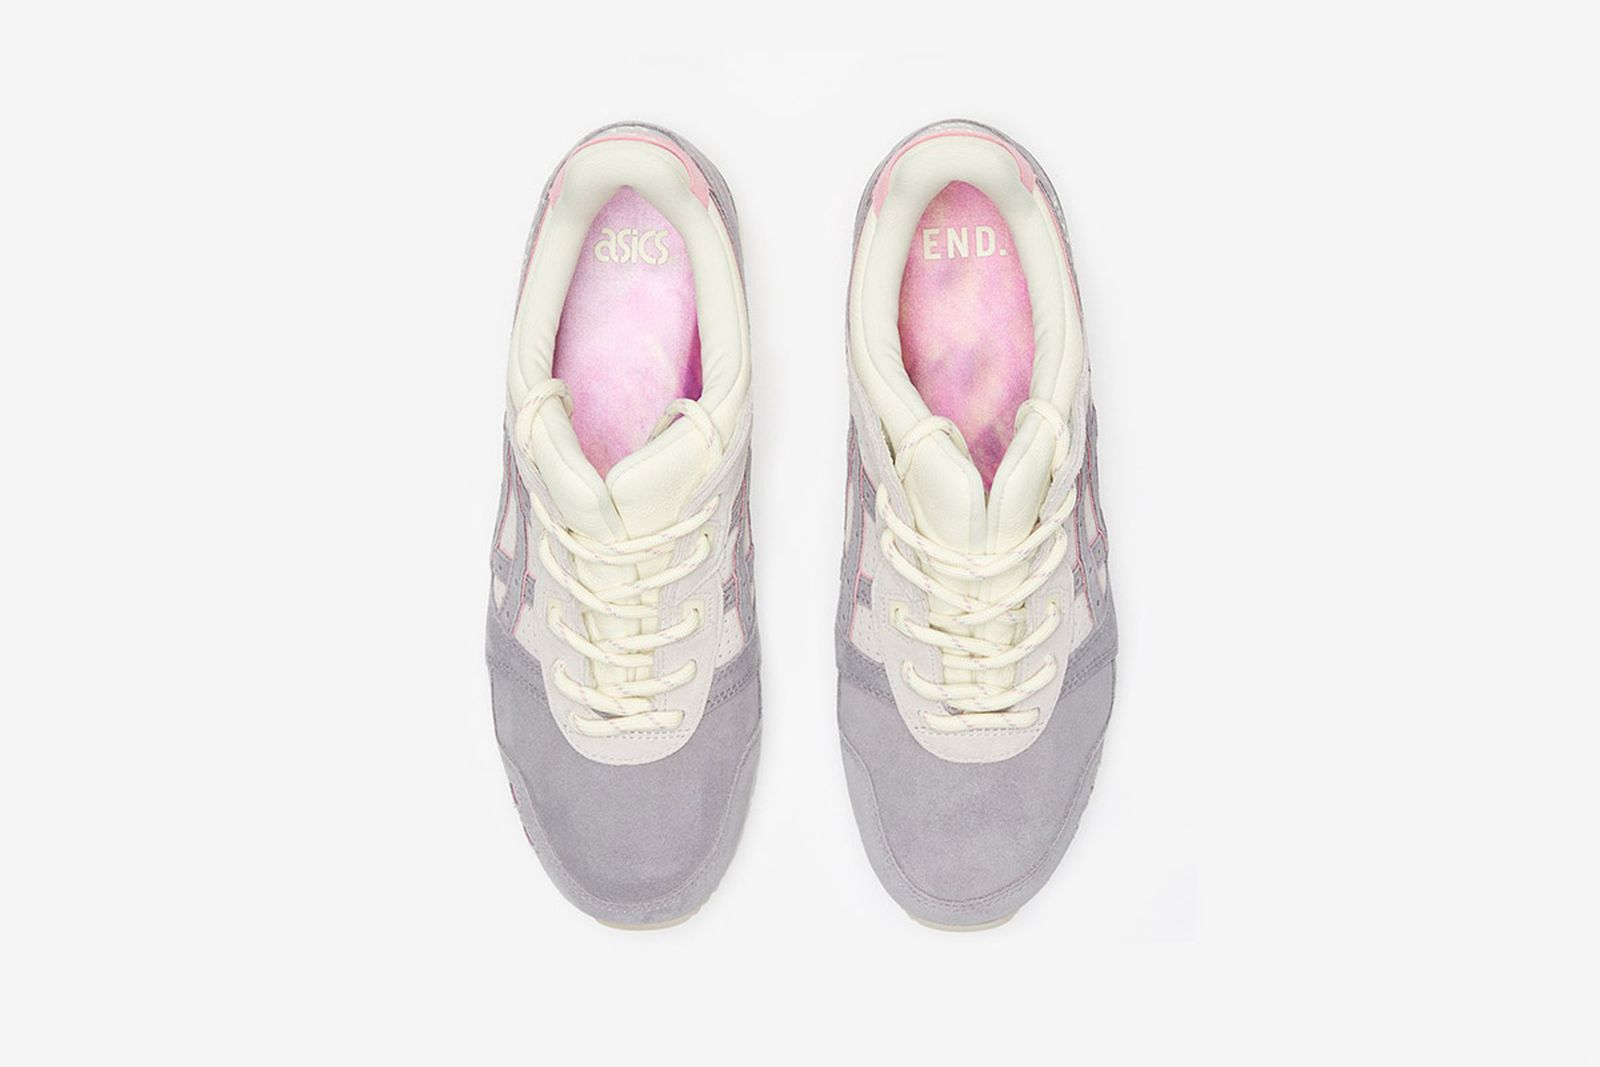 end-asics-gel-lyte-3-pearl-release-date-price-04